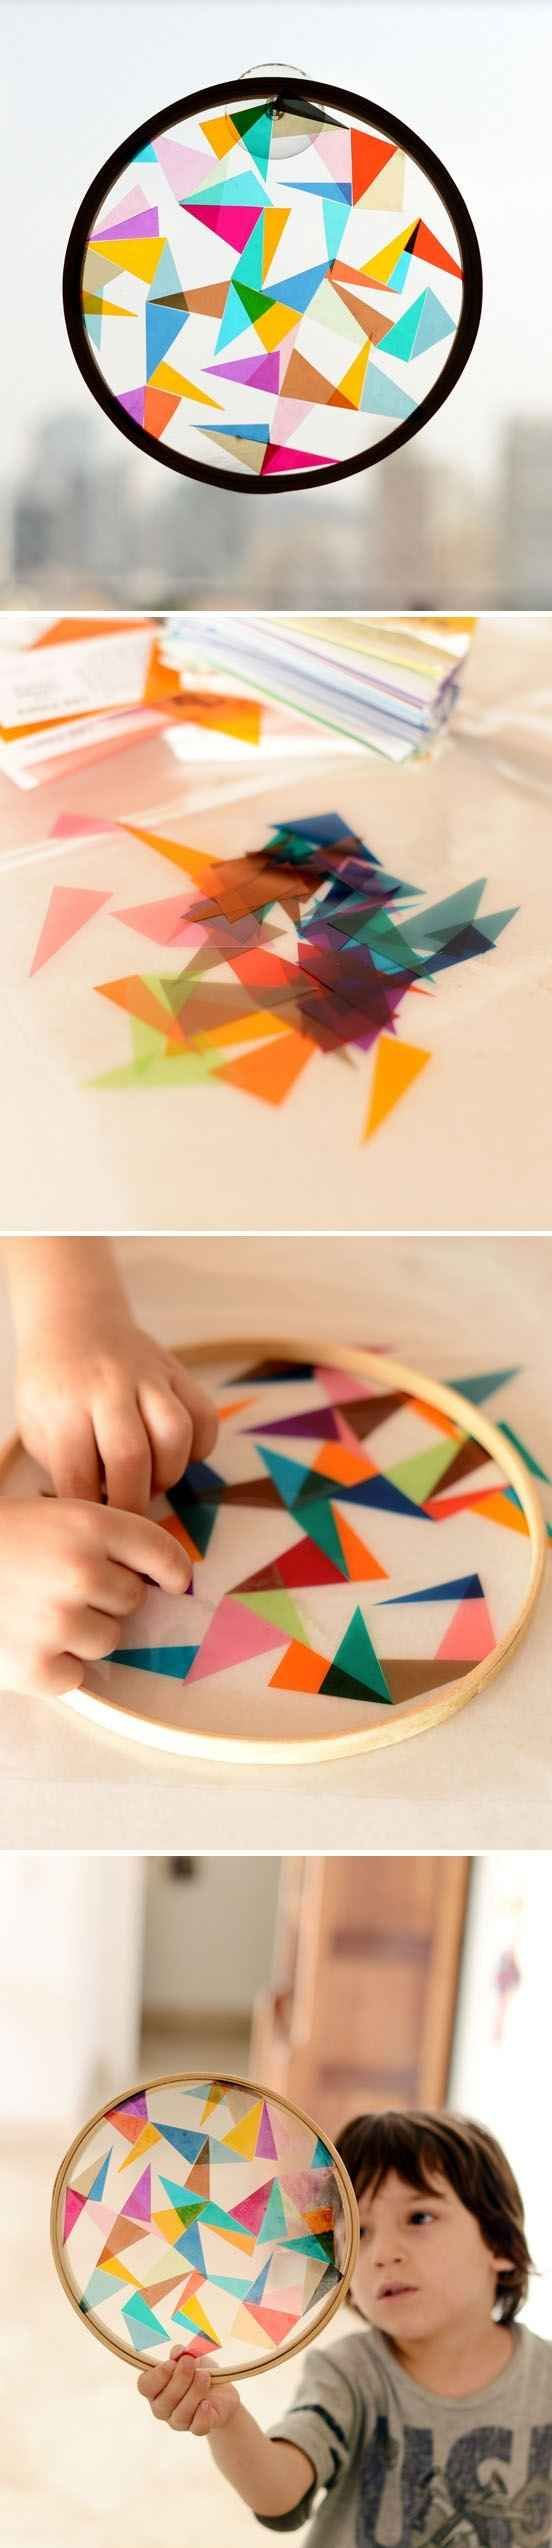 Make suncatchers to learn about colors and shapes. | 31 Clever And Inexpensive Ideas For Teaching Your Child At Home